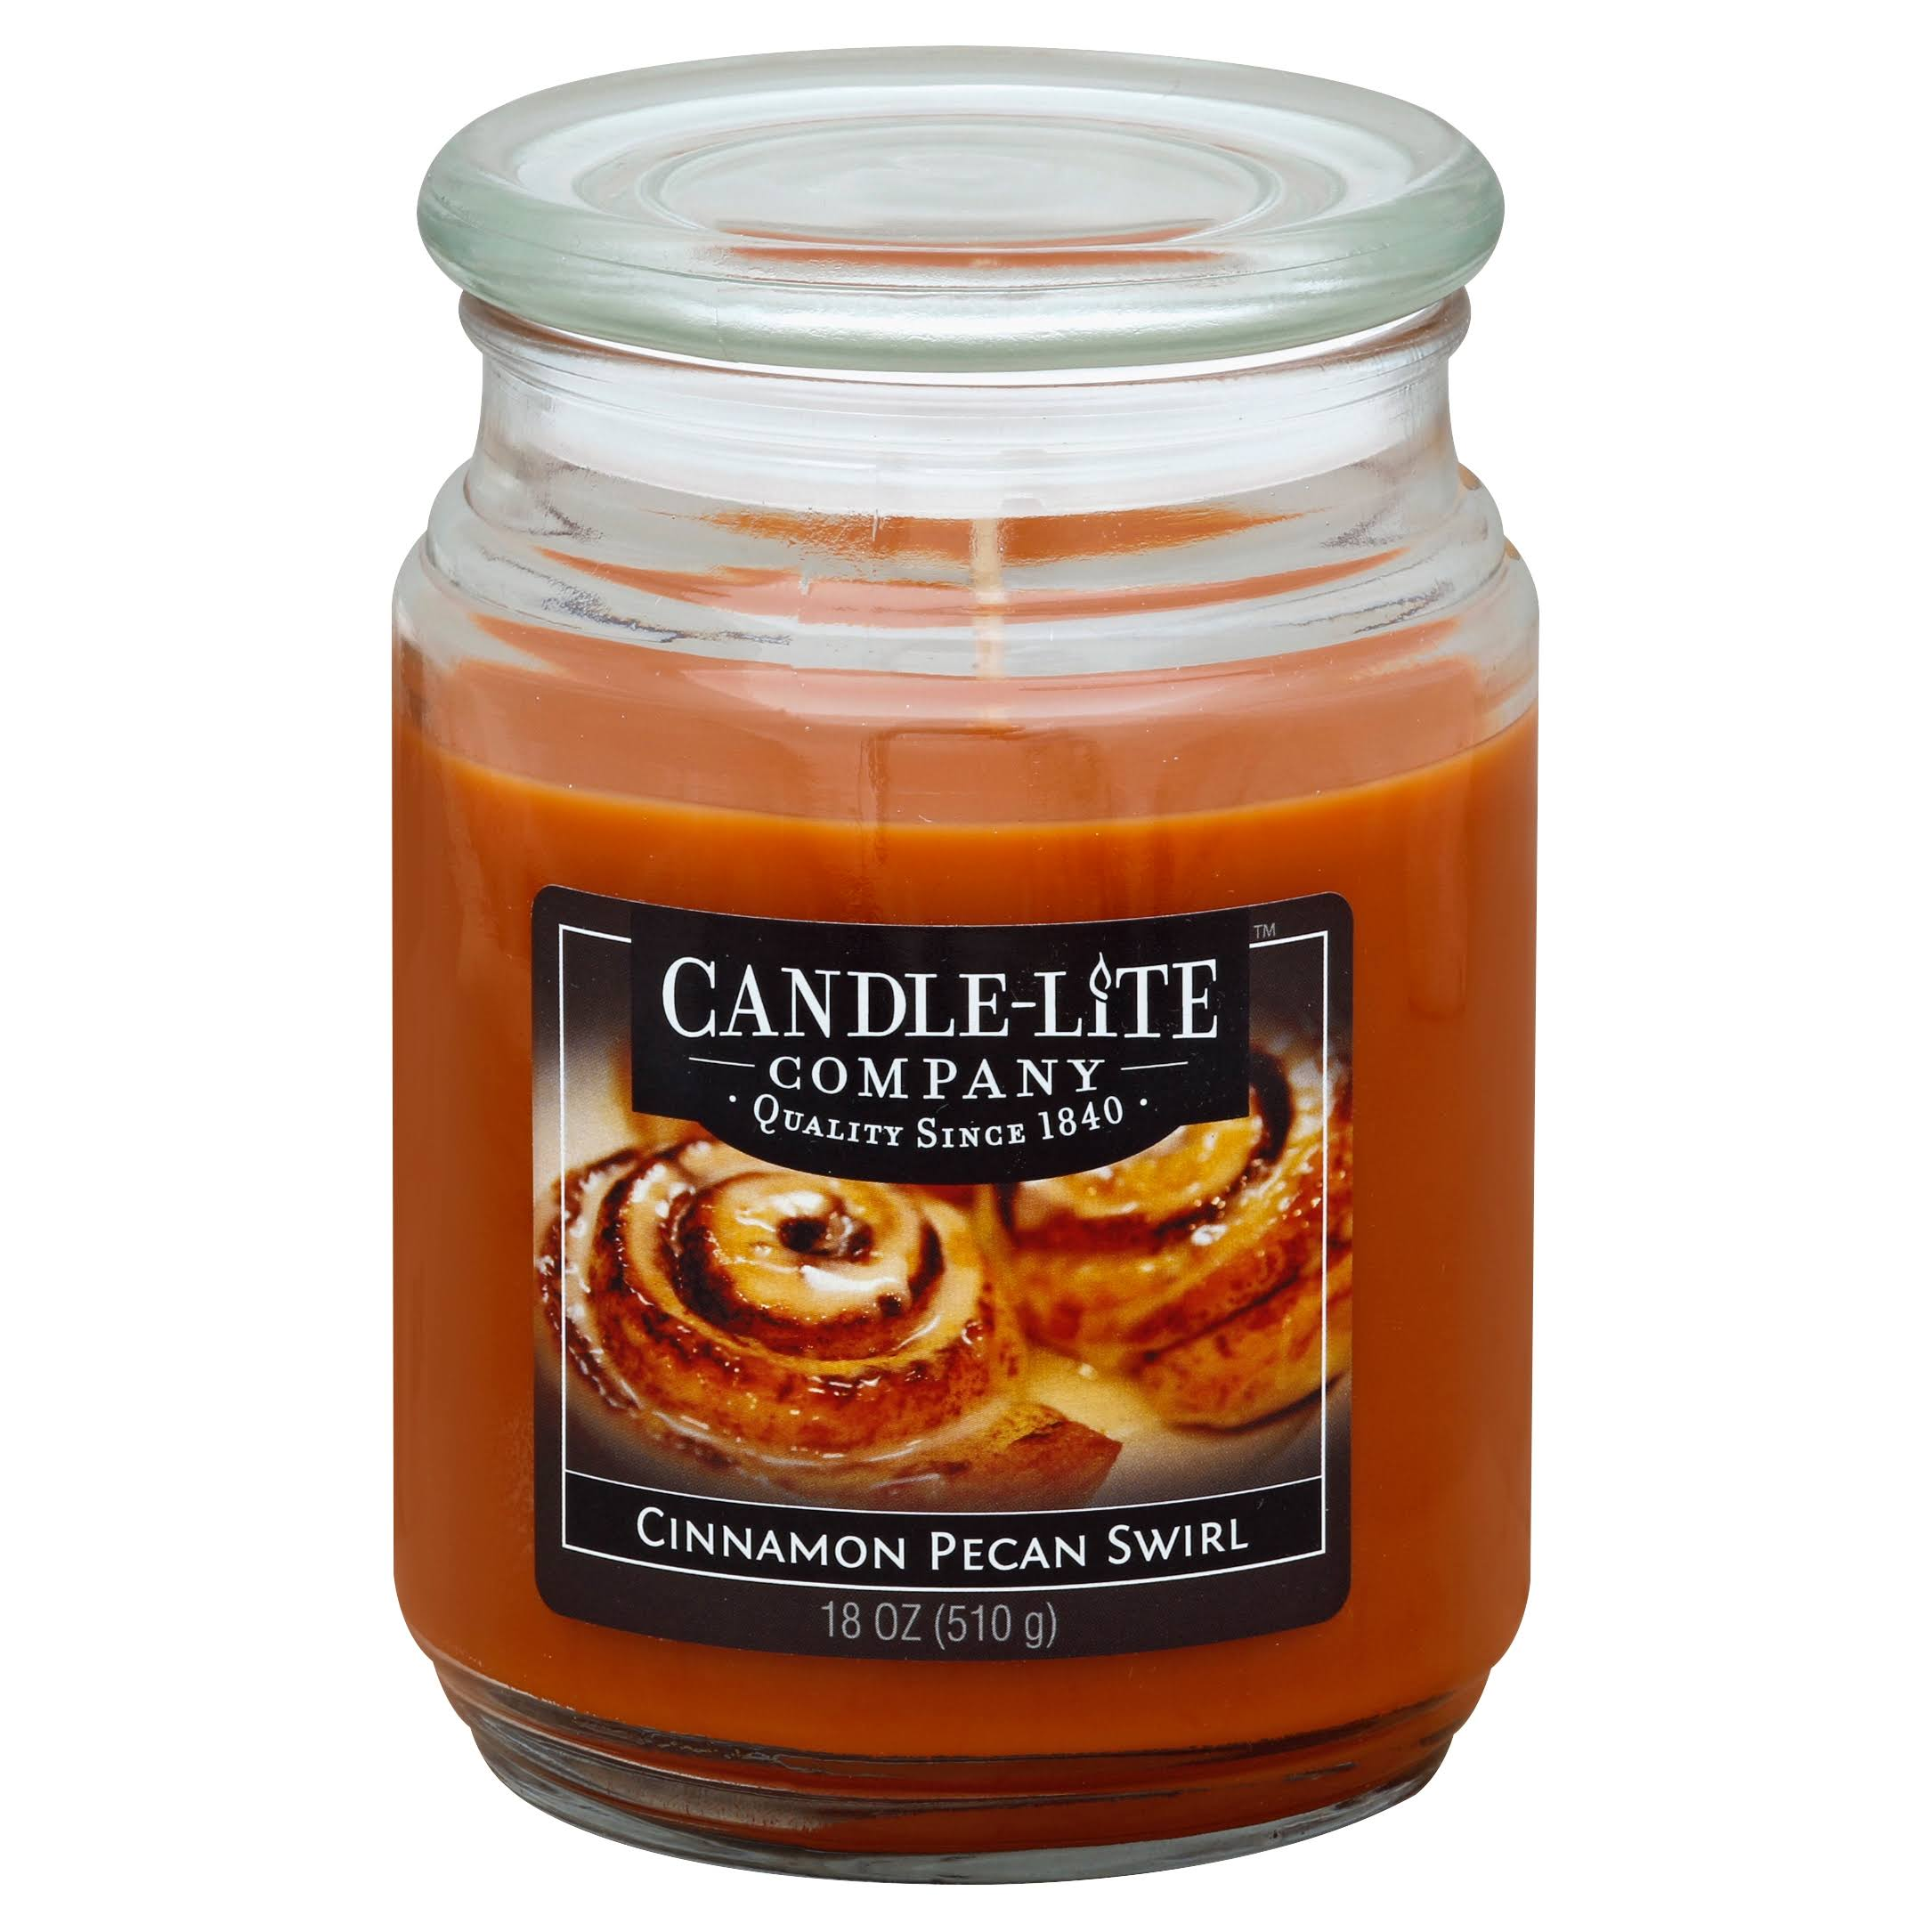 Candle lite 3297549 Scented Terrace Jar Candle - 18oz, Cinnamon and Pecan Swirl